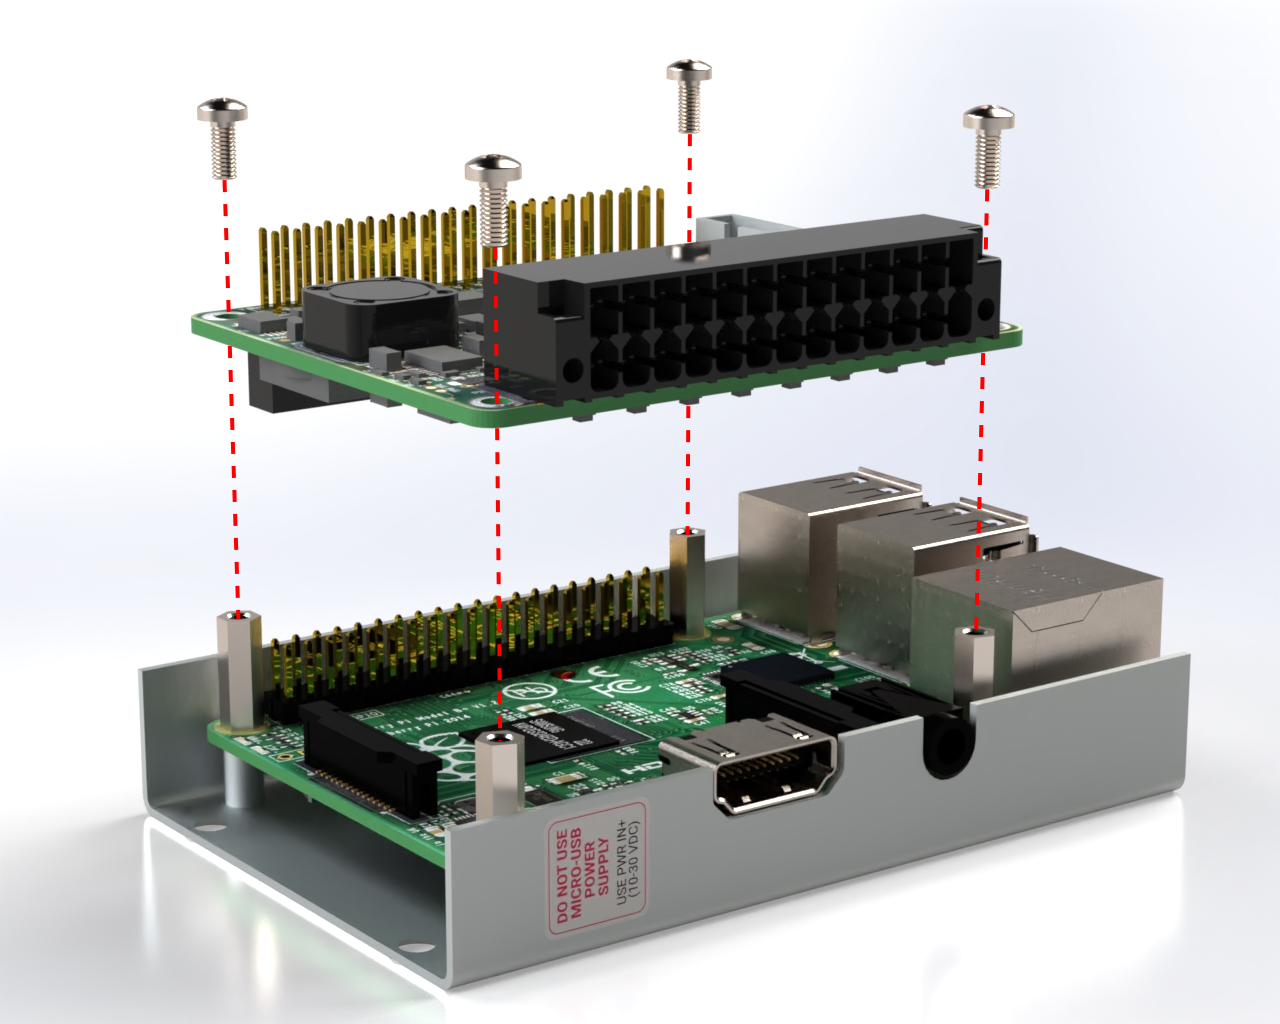 Put Monarco HAT on top of Raspberry Pi and tighten it with screws.